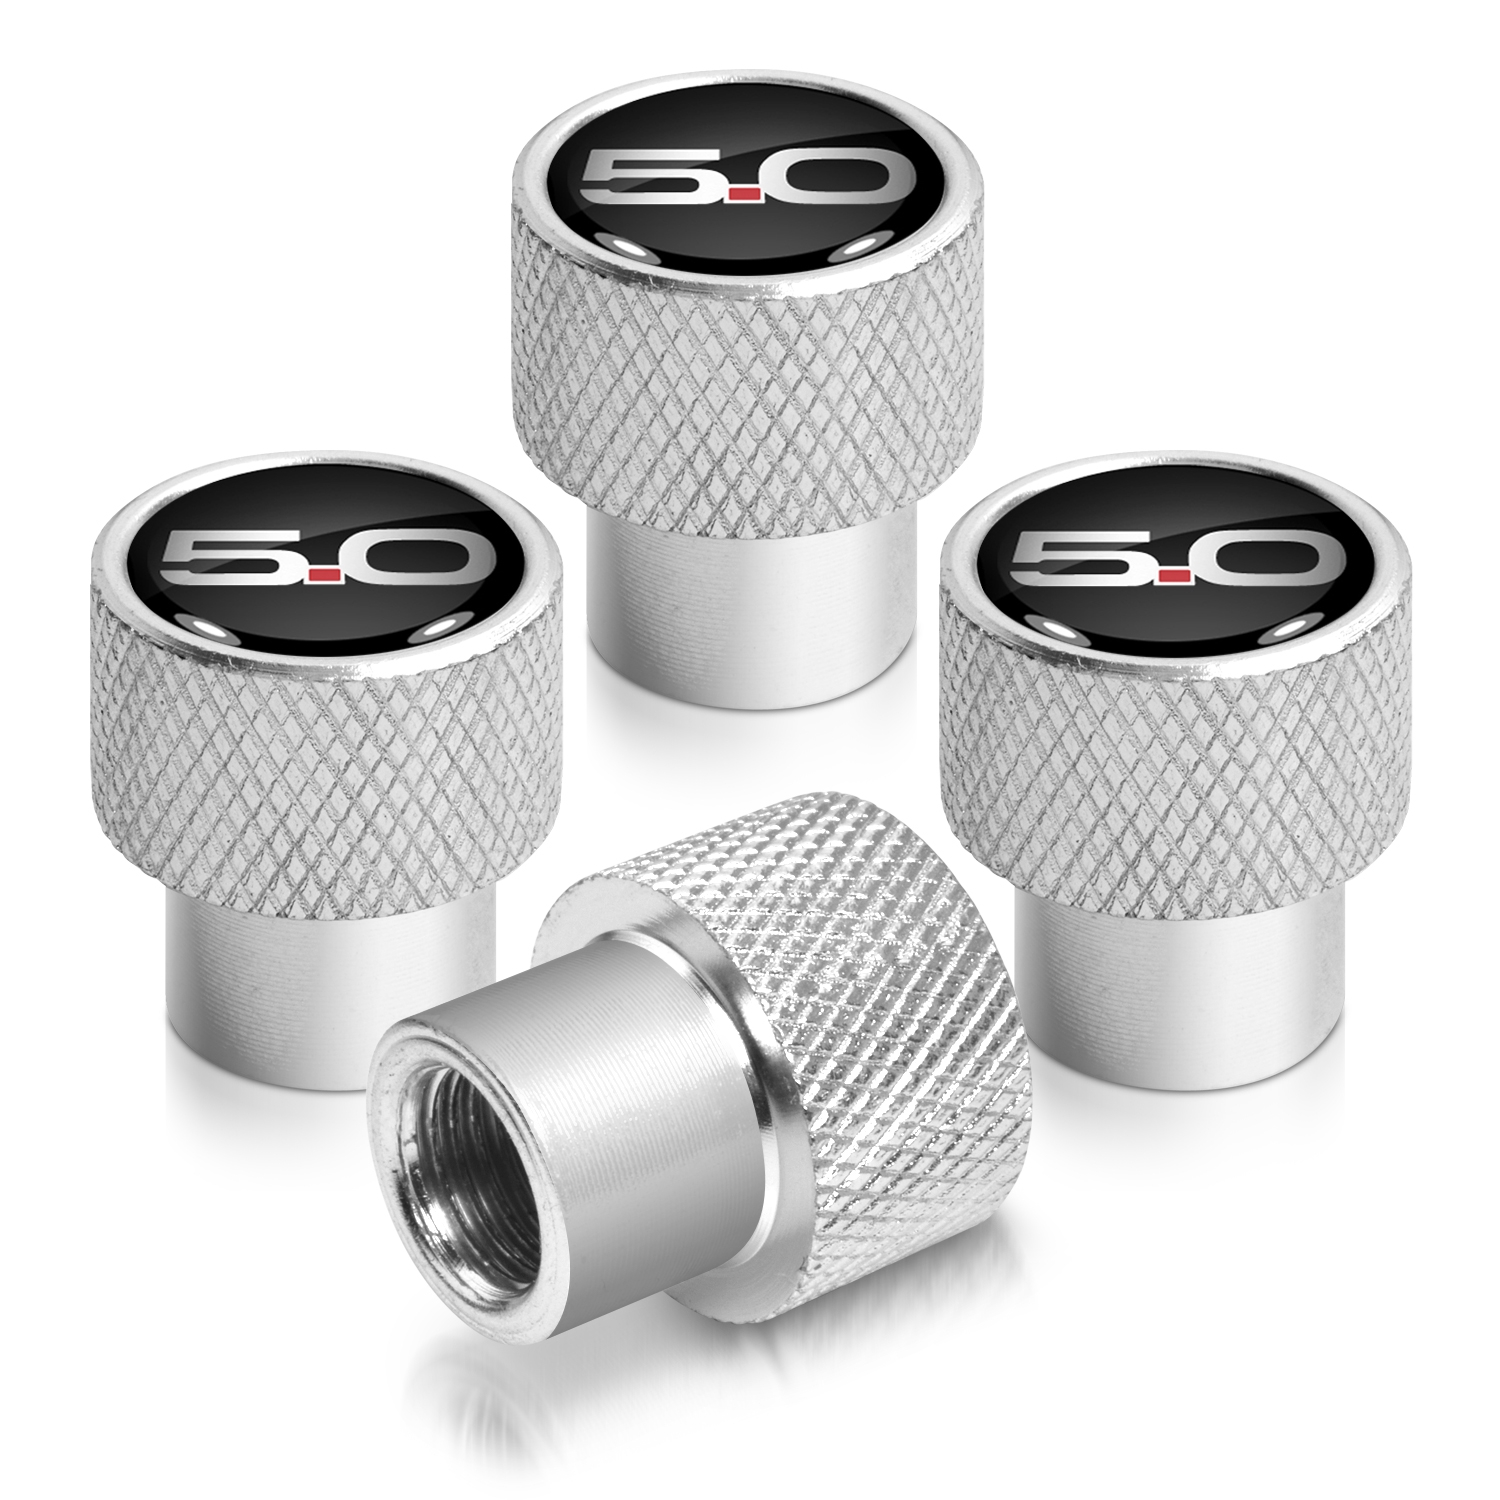 Ford Mustang 5.0 in Black on Silver Chrome Aluminum Tire Valve Stem Caps